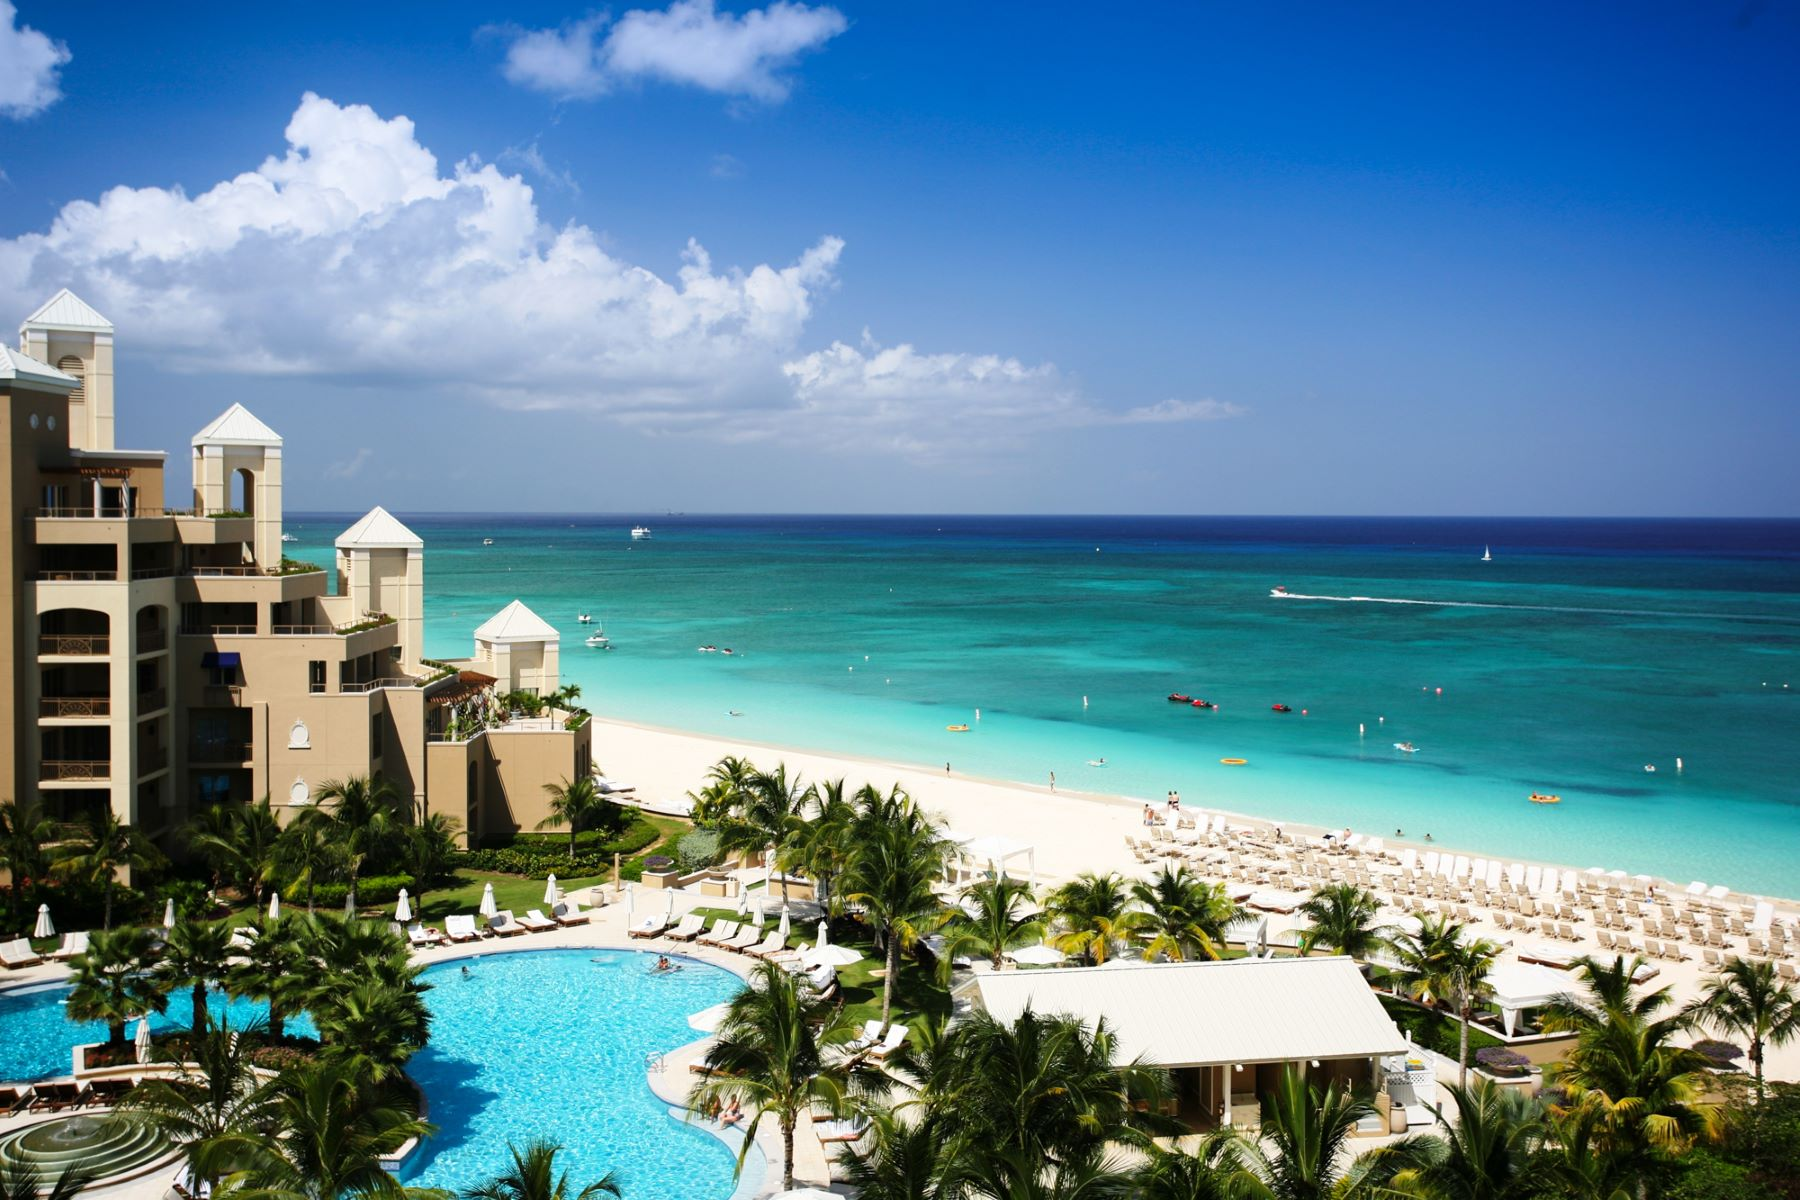 共管式独立产权公寓 为 出租 在 Ritz-Carlton vacation rental The Ritz-Carlton, Grand Cayman 1059 West Bay Rd 七英里海峡, KY1 开曼群岛